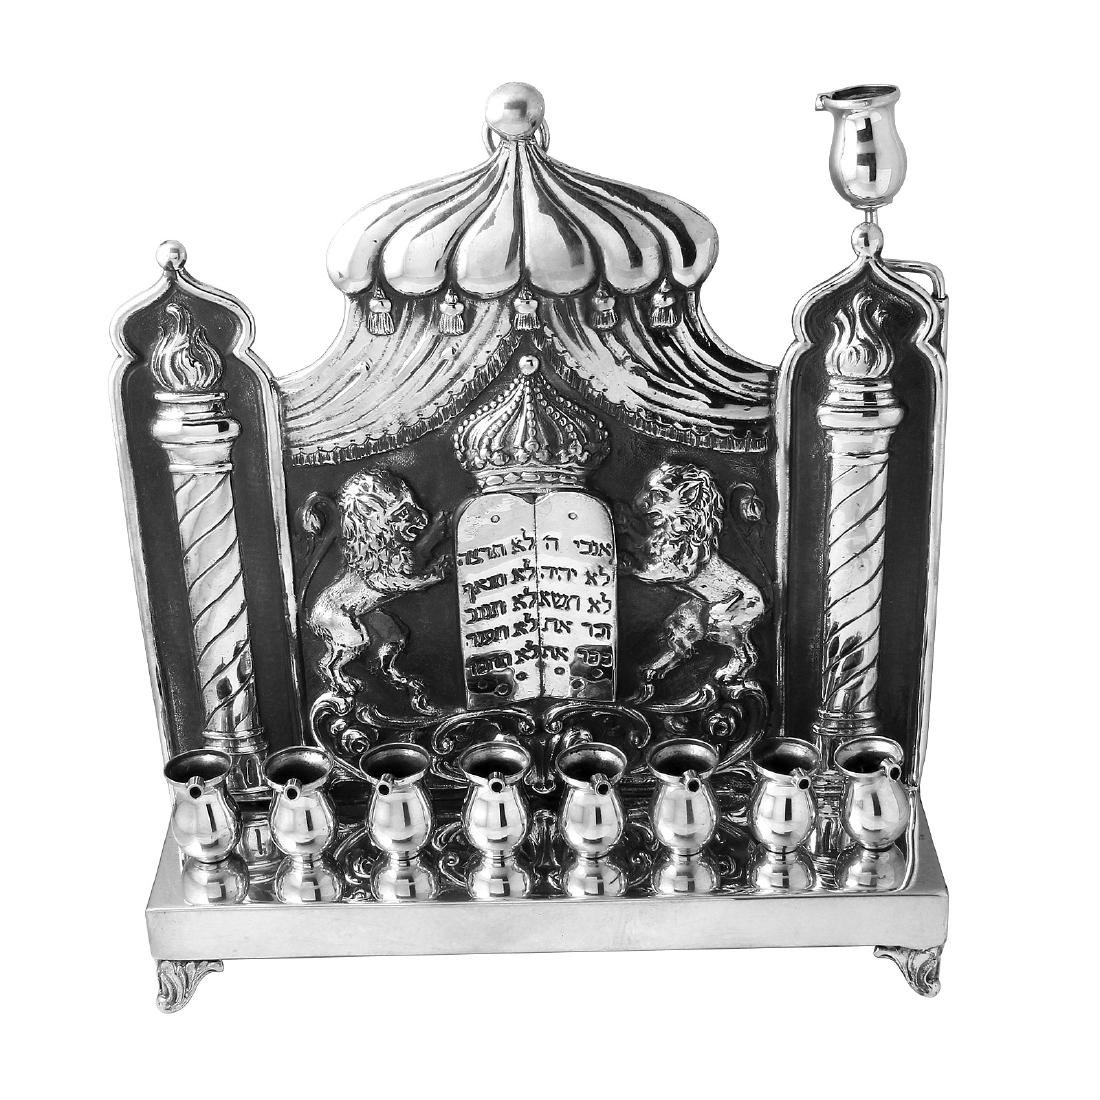 Karl Junker Antique Sterling Hanukkah Menorah